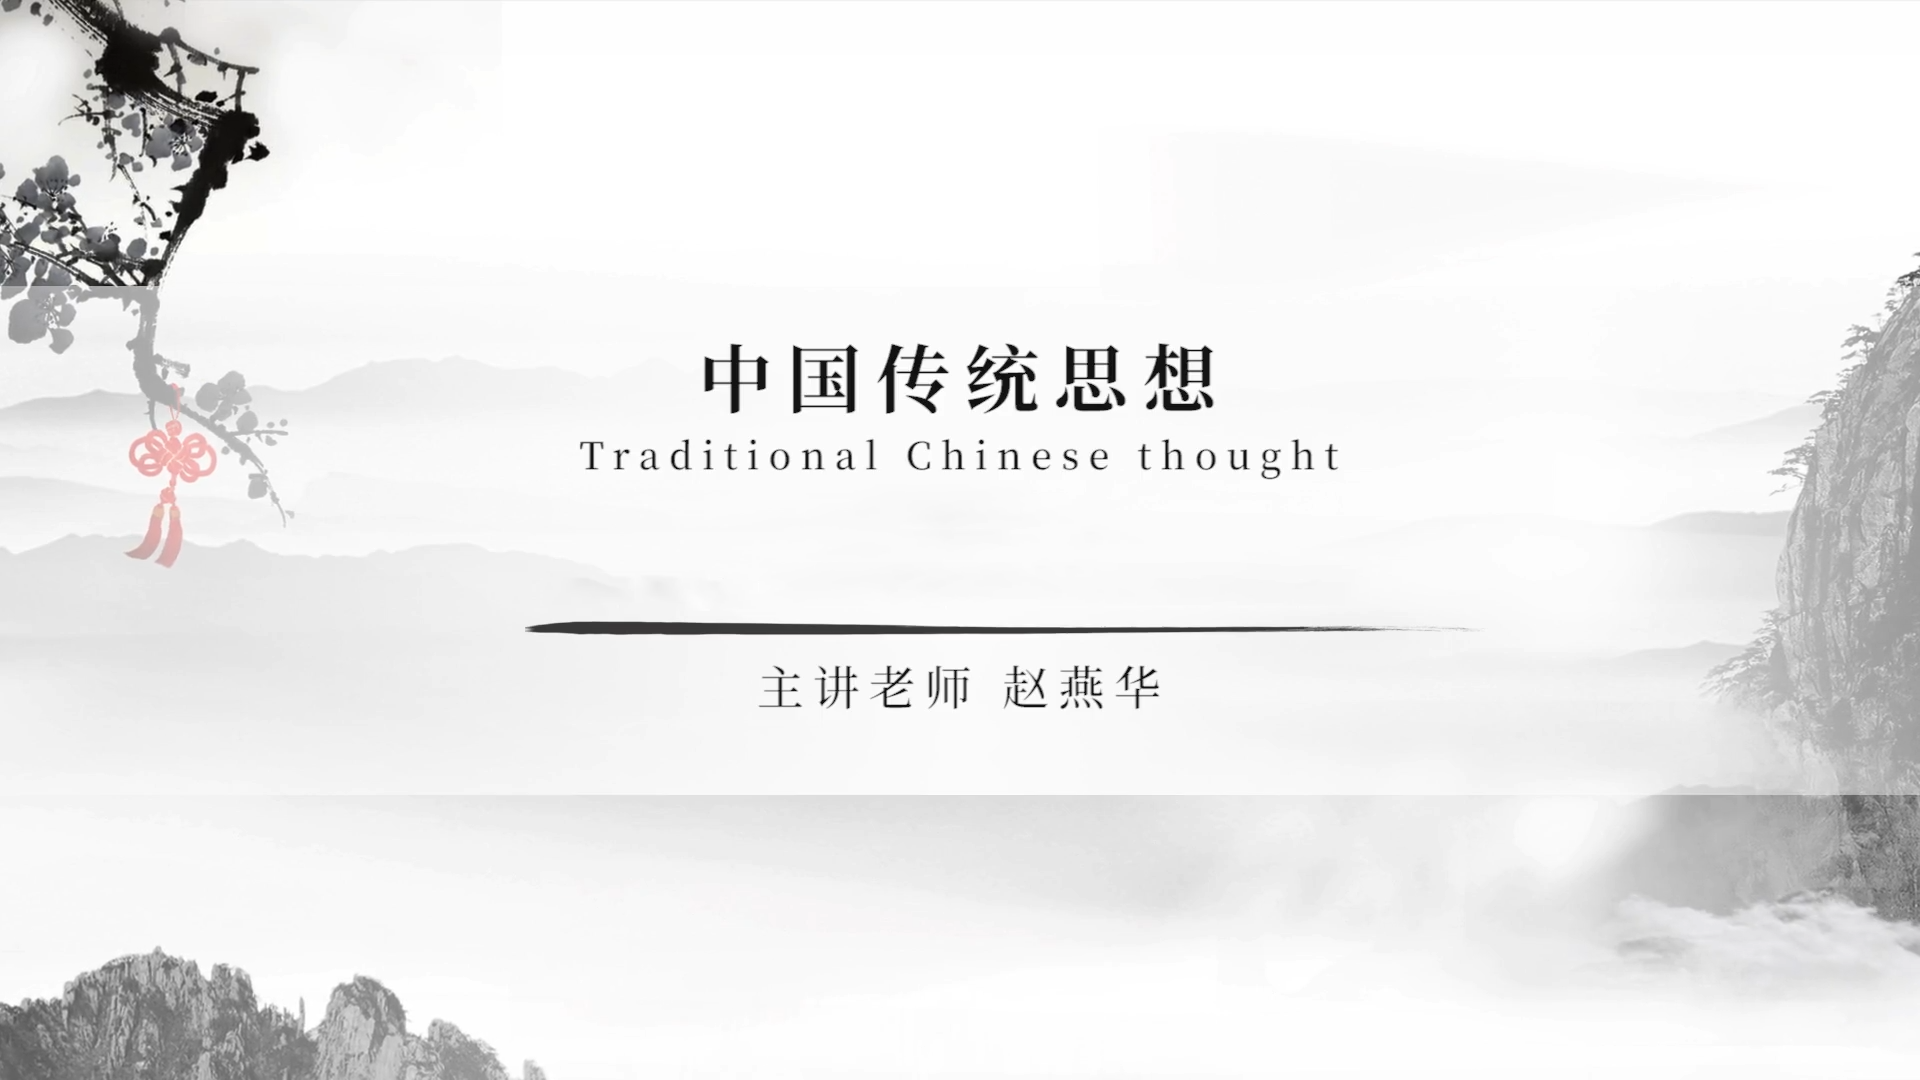 Chinese Culture Course 1: Traditional Chinese Thoughts